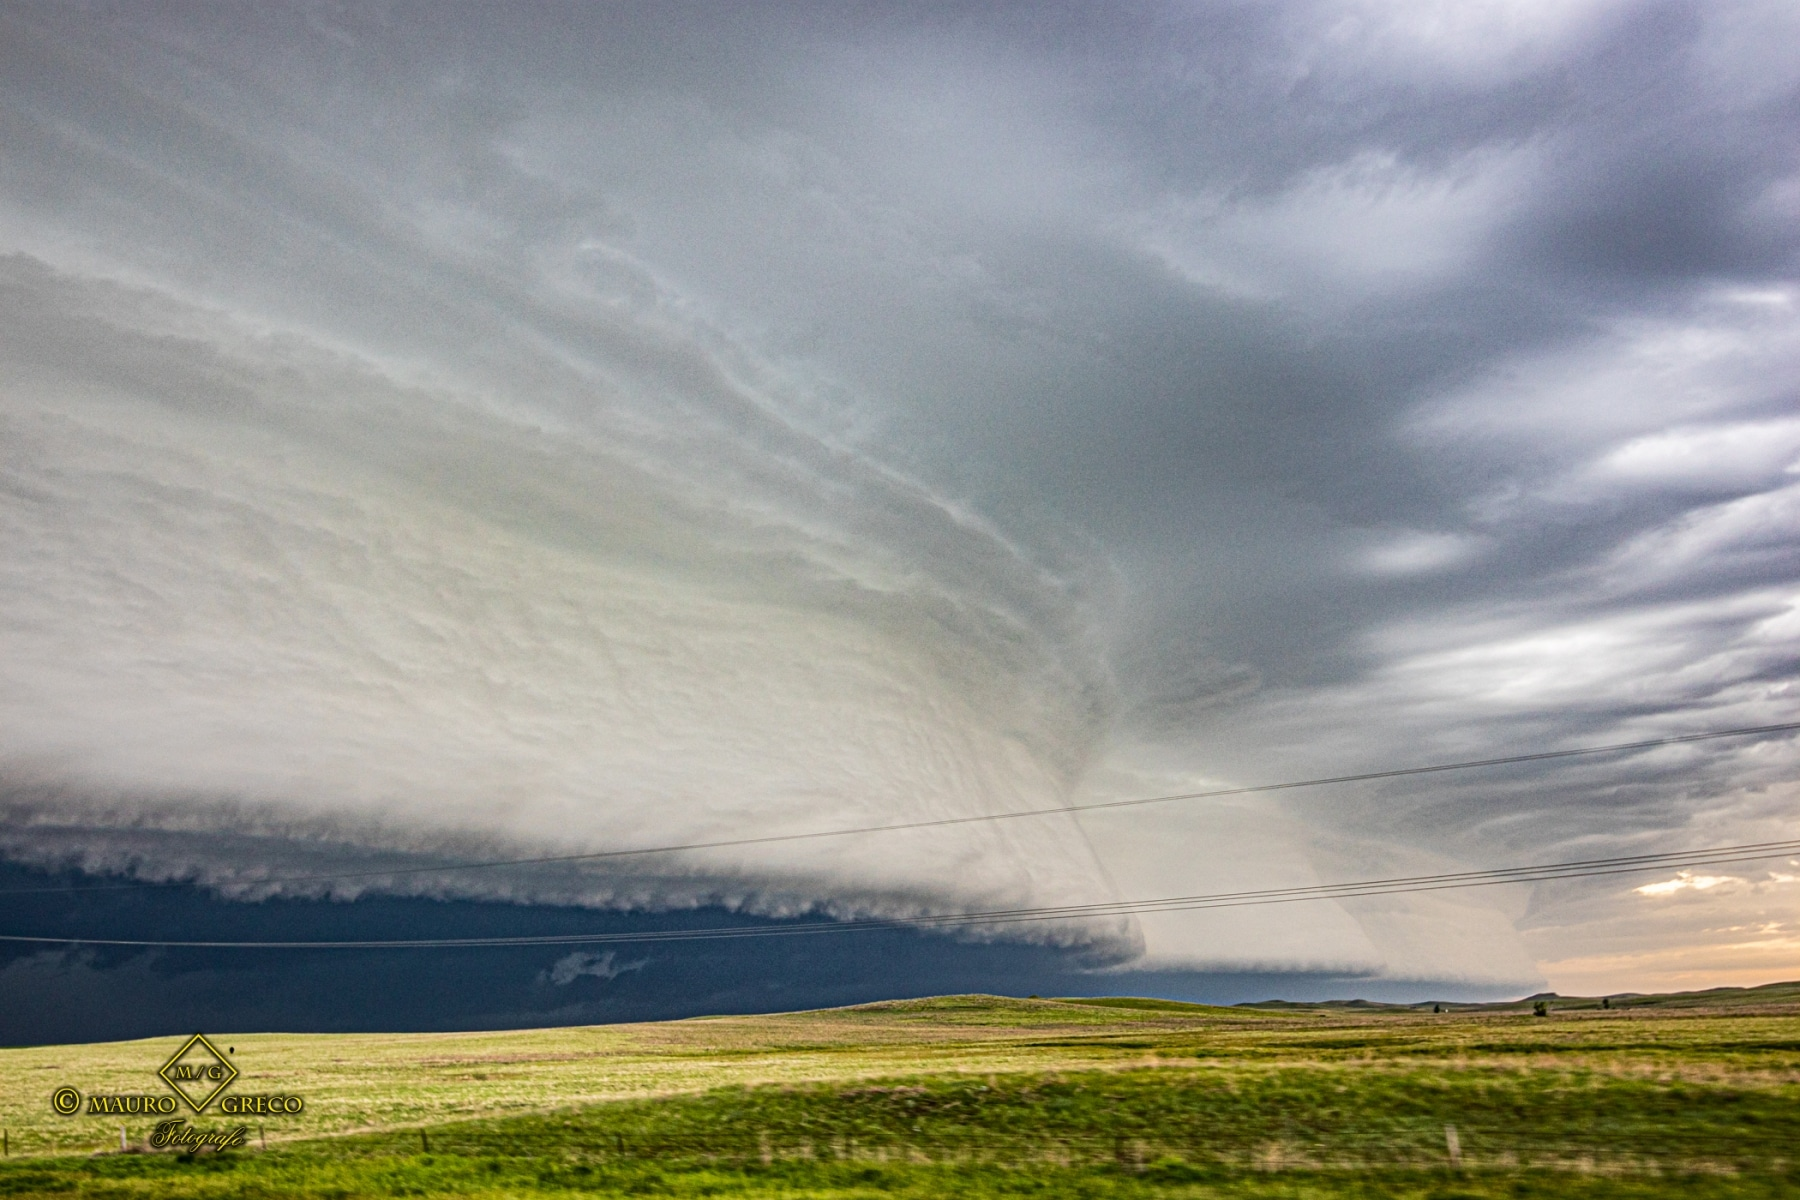 June 6 2020 Faith South Dakota Supercell and shelf cloud - Tornado Tour StormWind